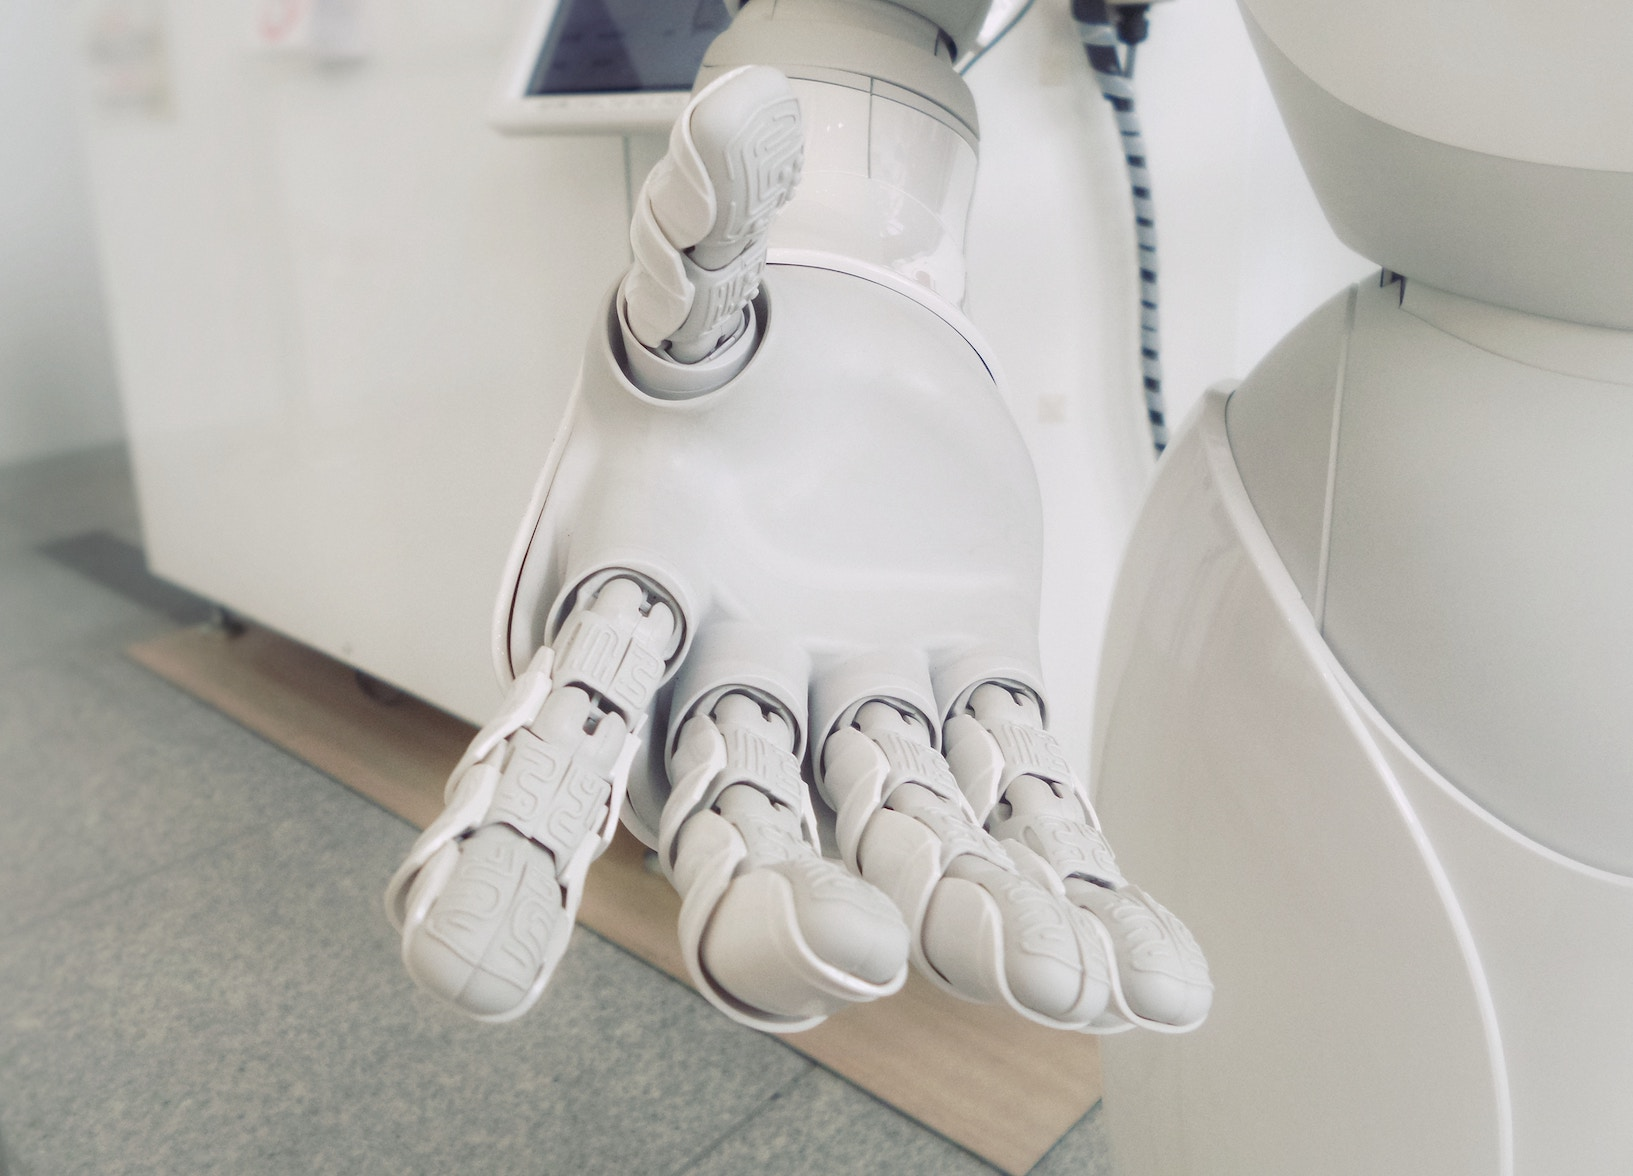 How to land a job in AI